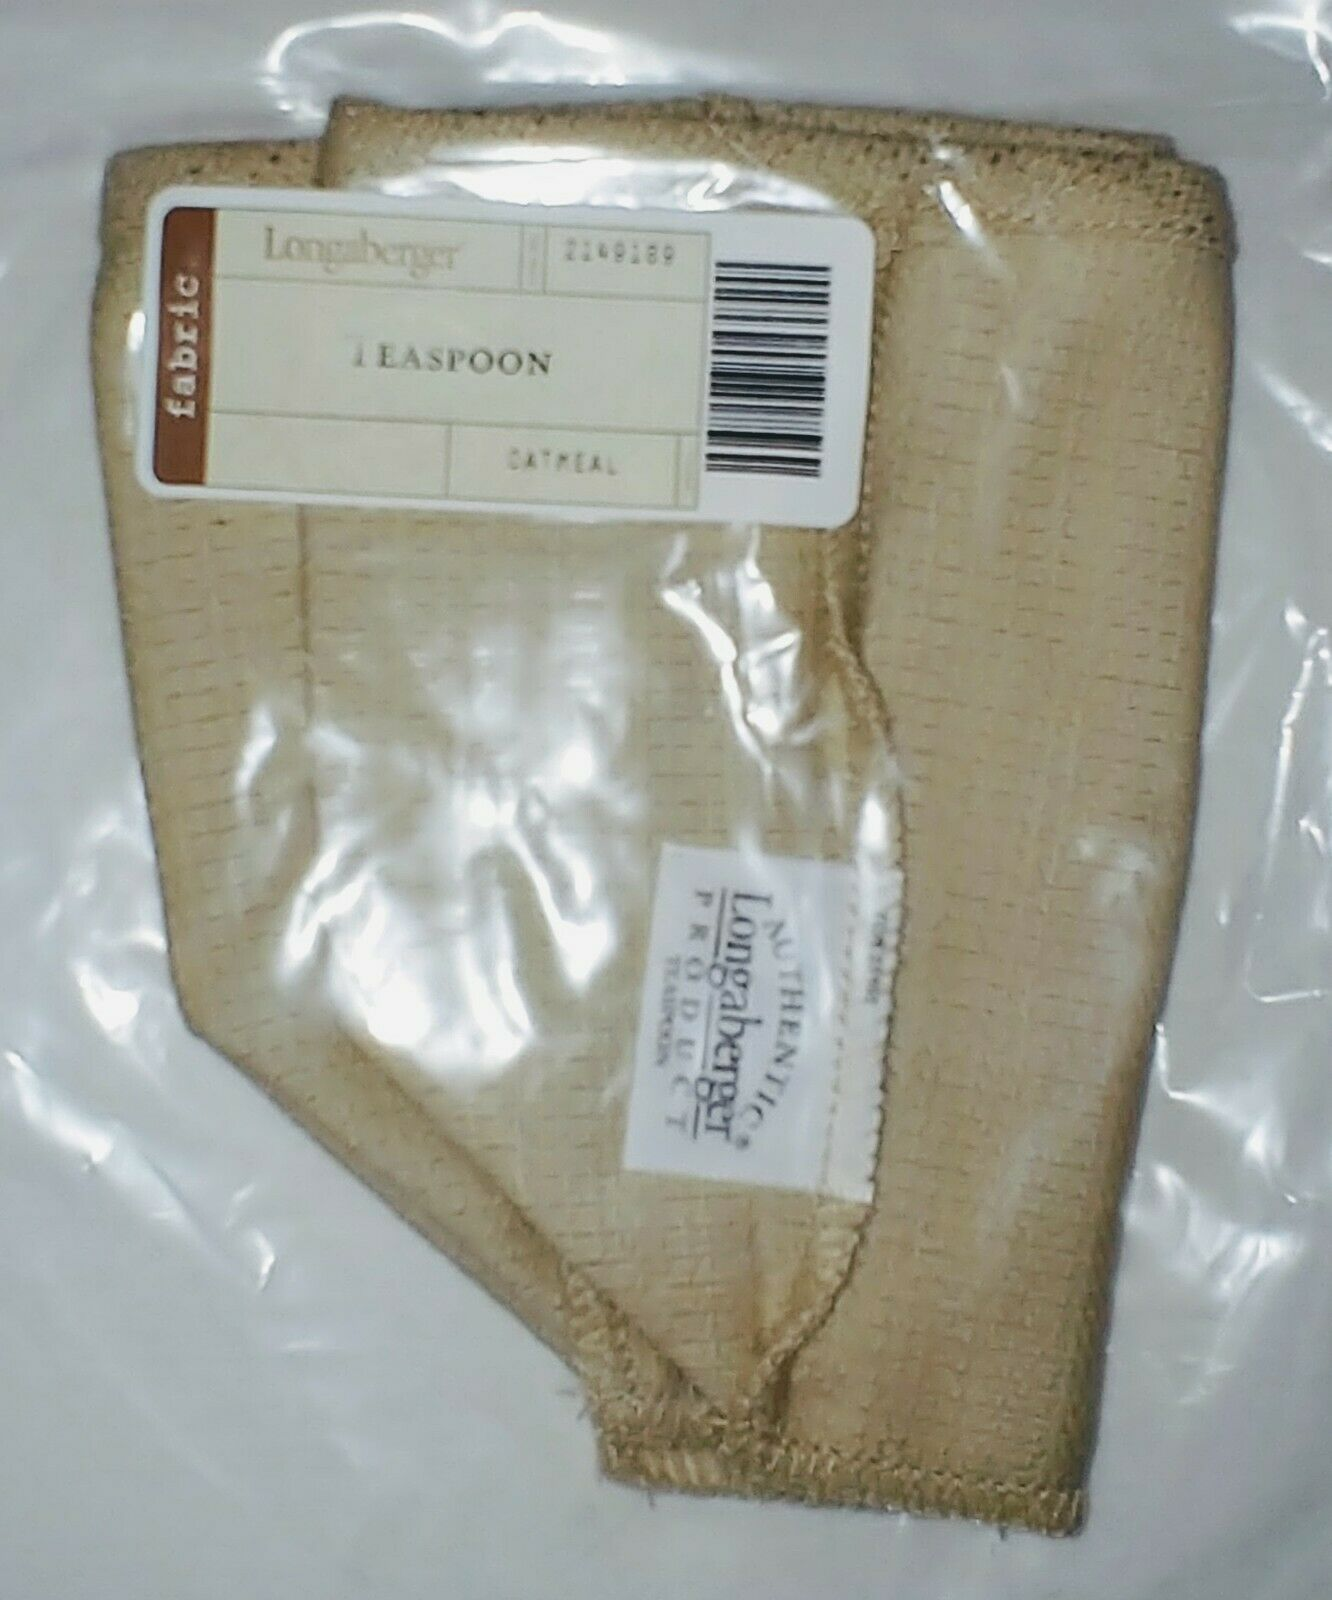 New in Bag Longaberger Teaspoon Liner Only only Oatmeal